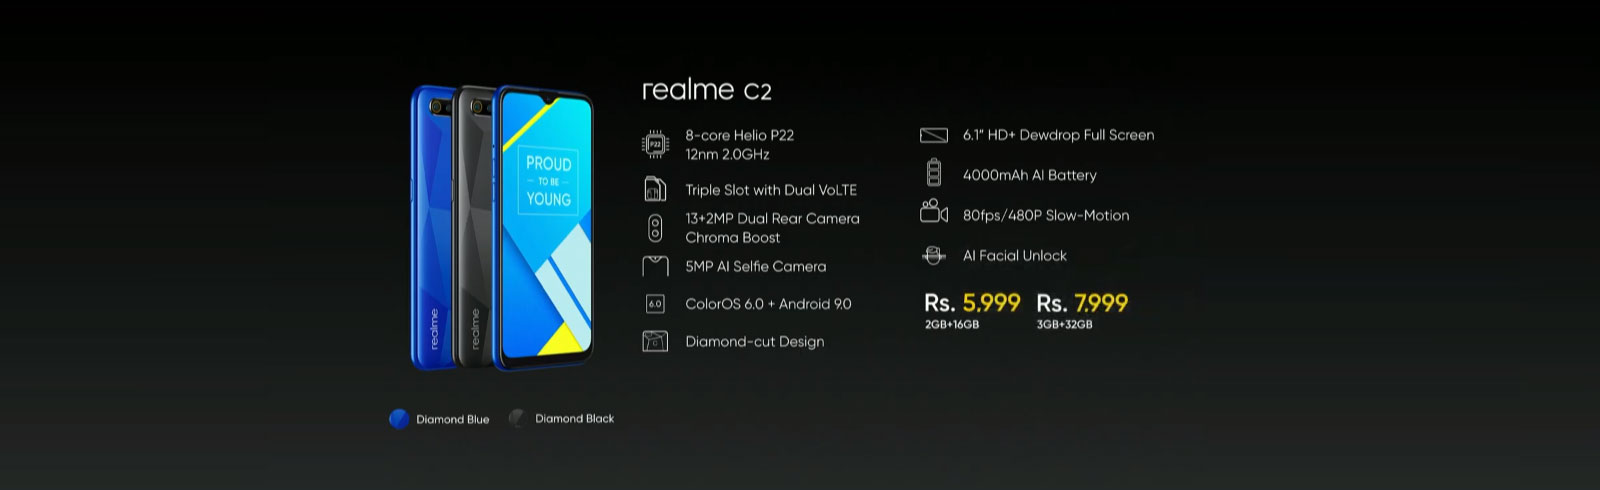 Realme C2 is official with a Helio P22 chipset and a 4000 mAh AI battery